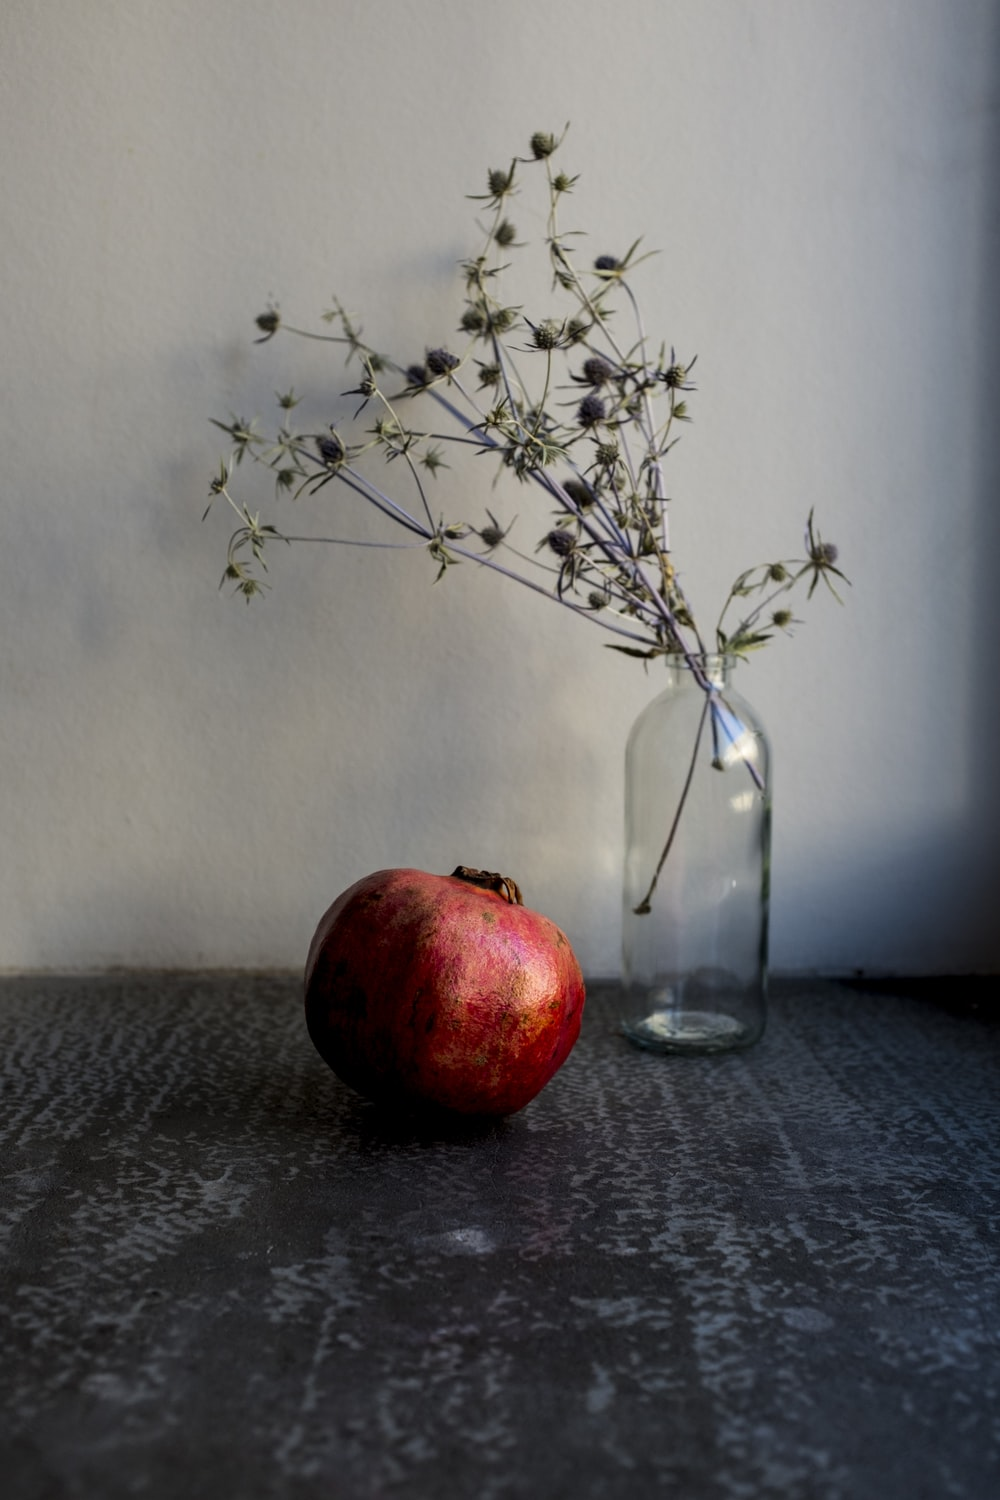 red apple fruit on clear glass vase